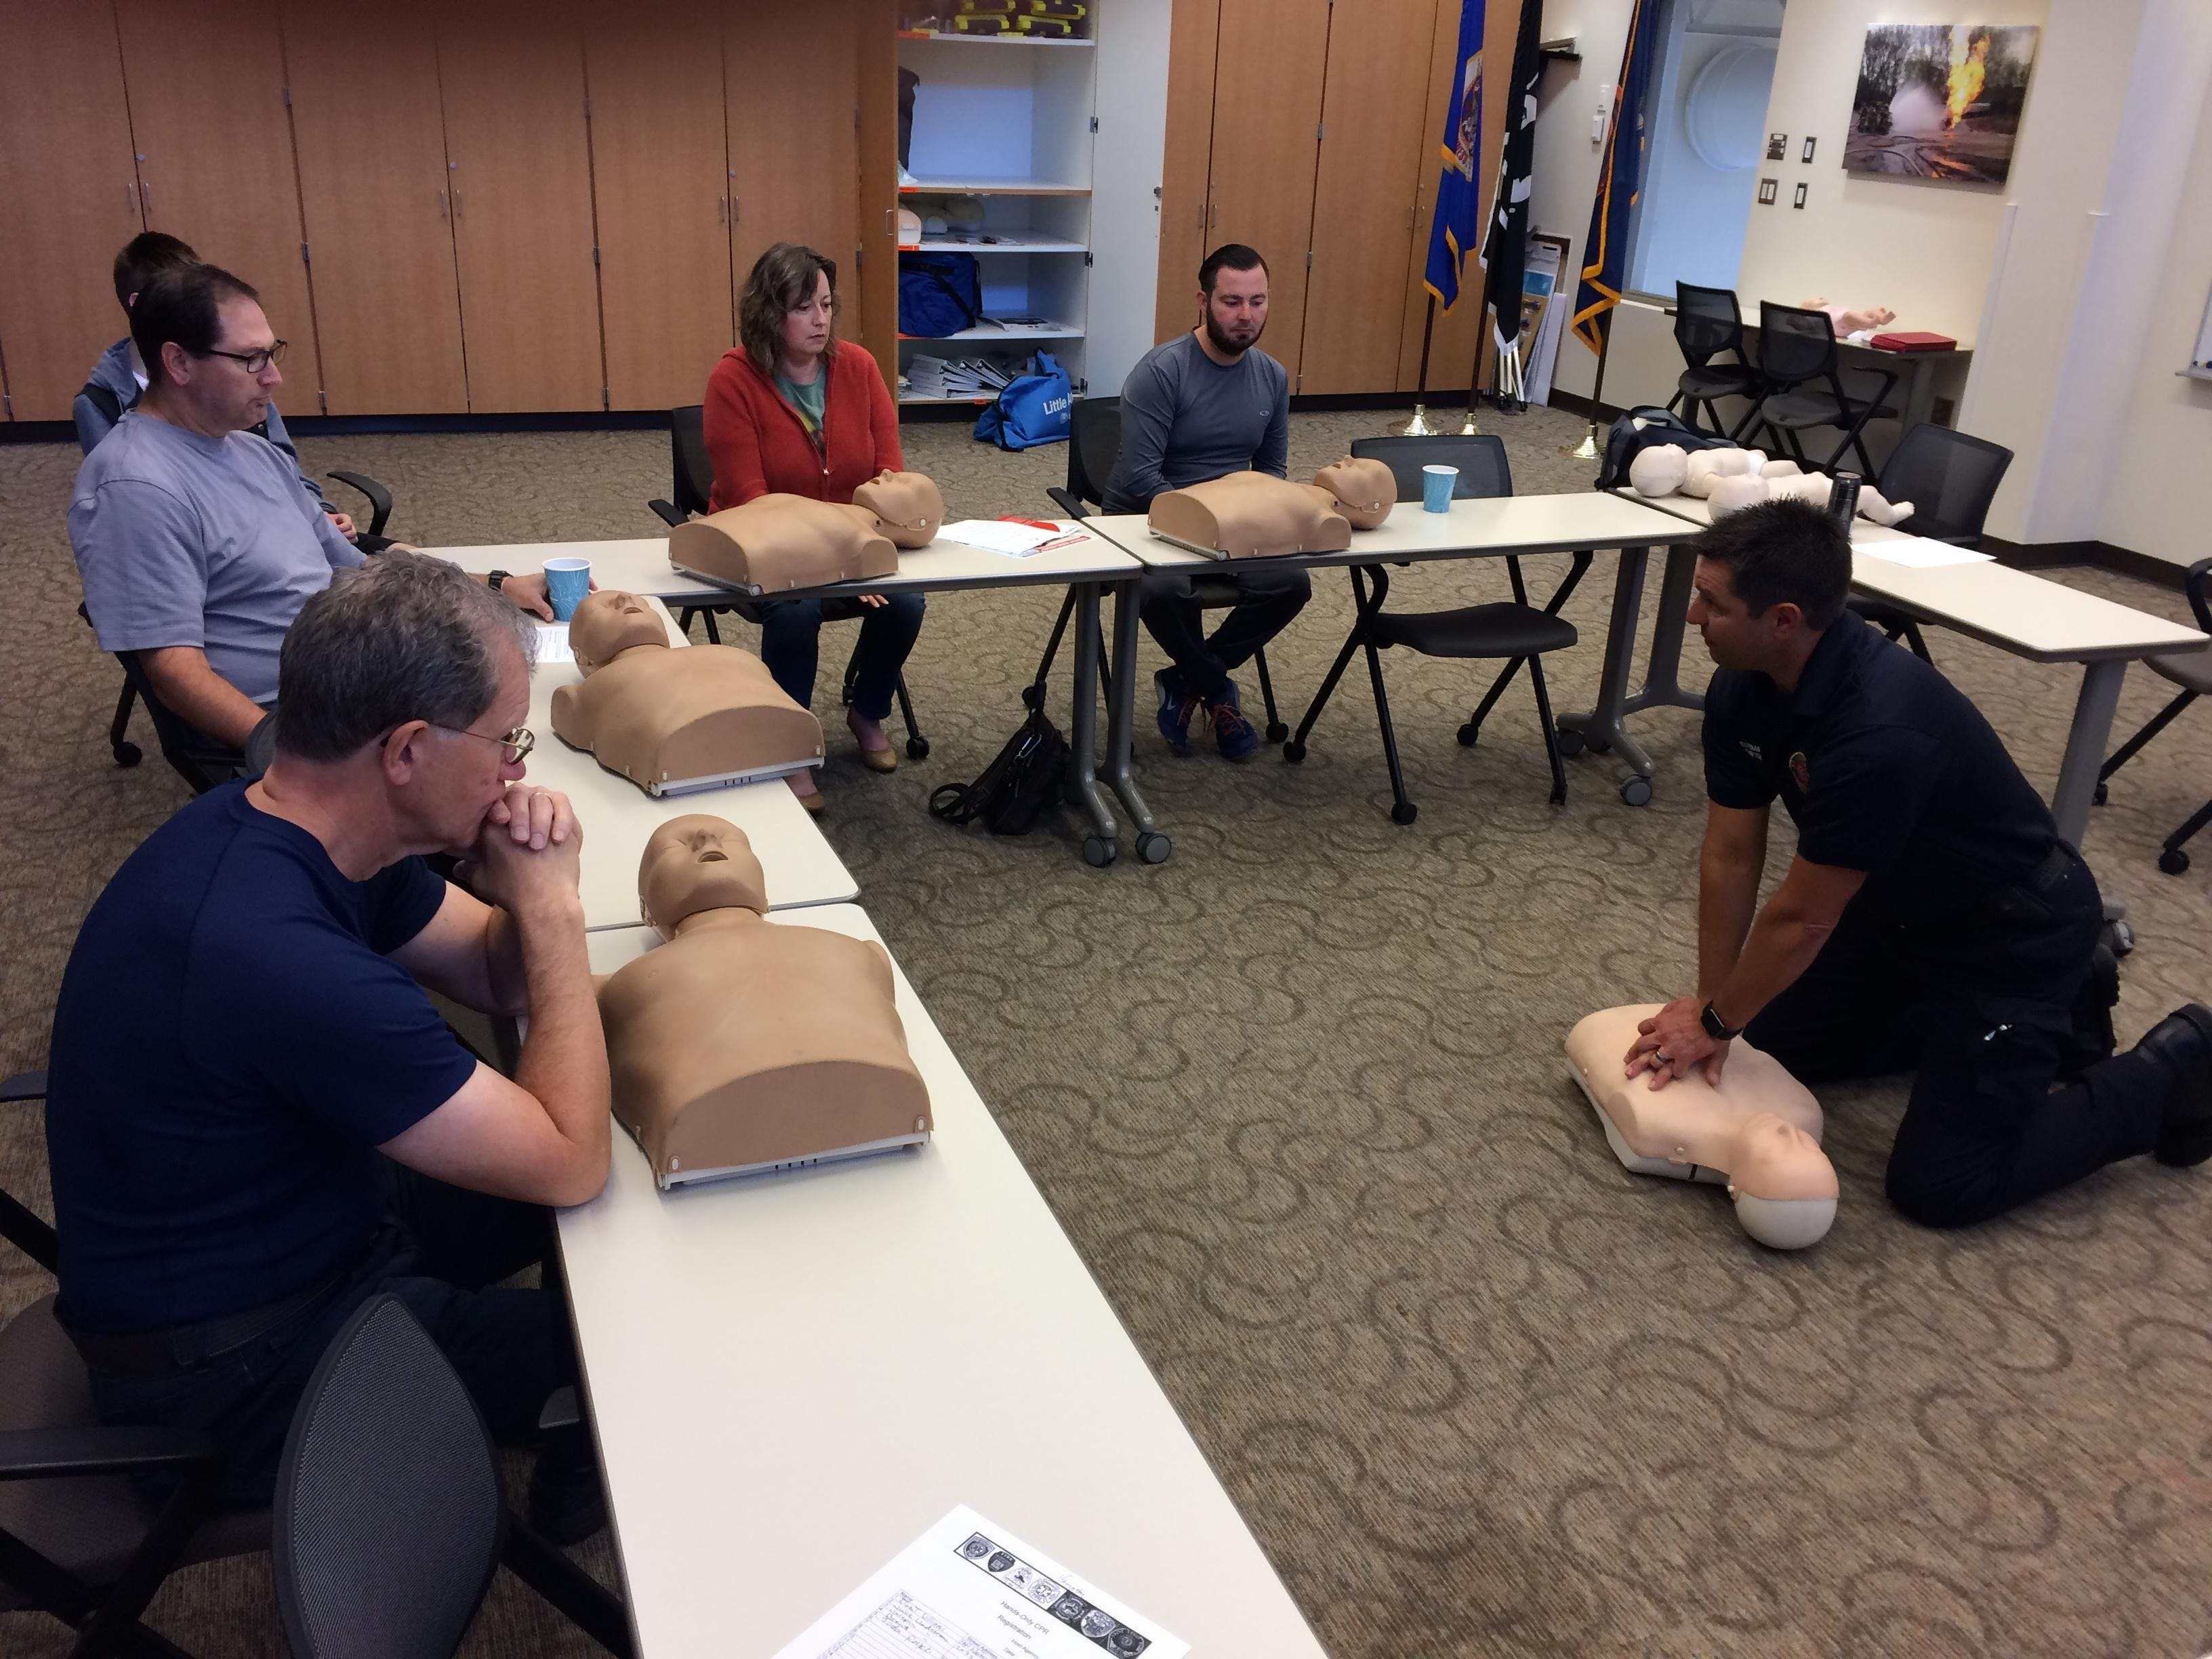 Hands Only Cpr Training At St Louis Park Fire Department St Louis